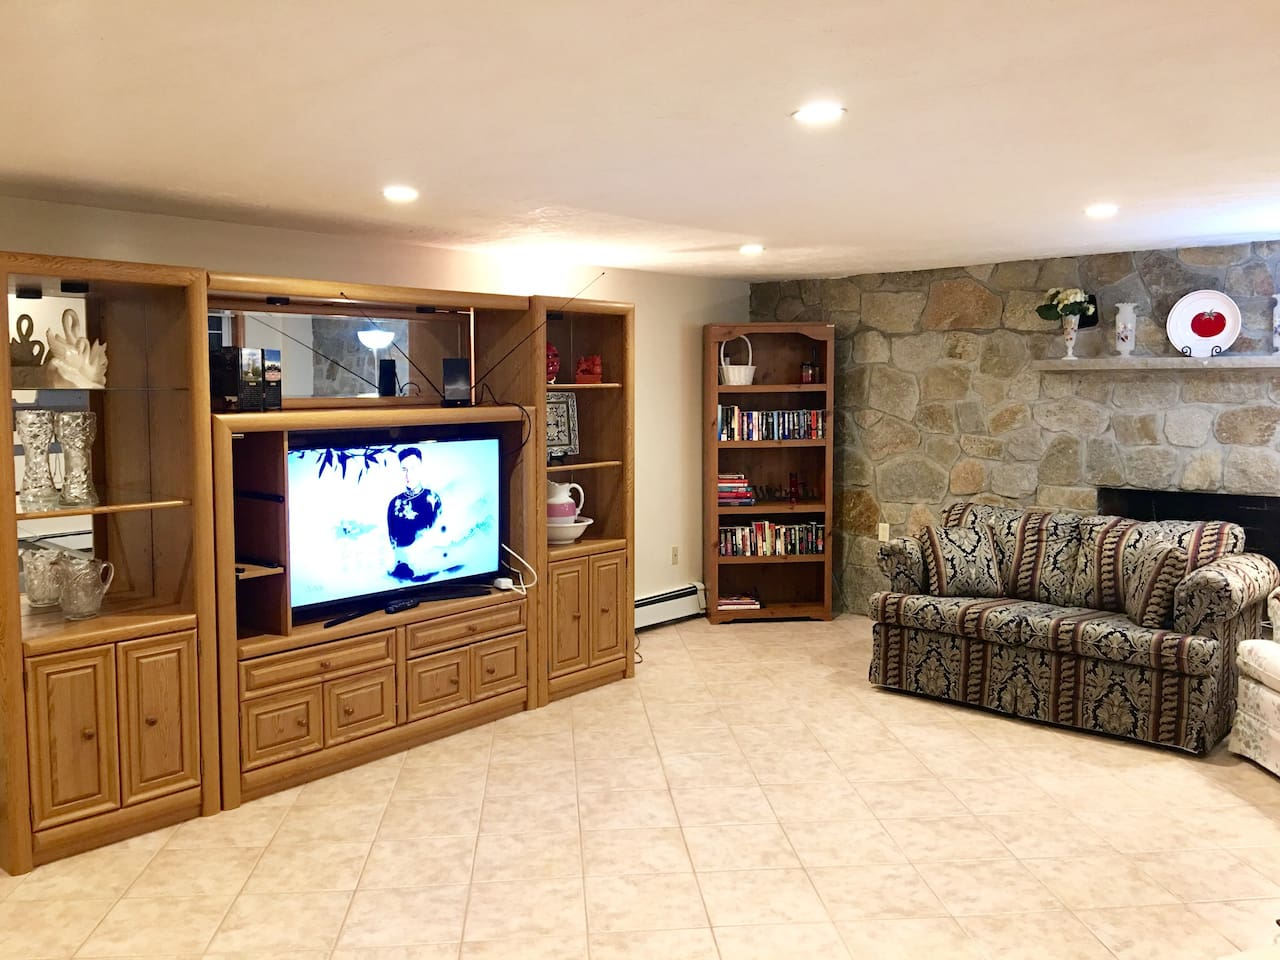 Living room with big screen smart TV